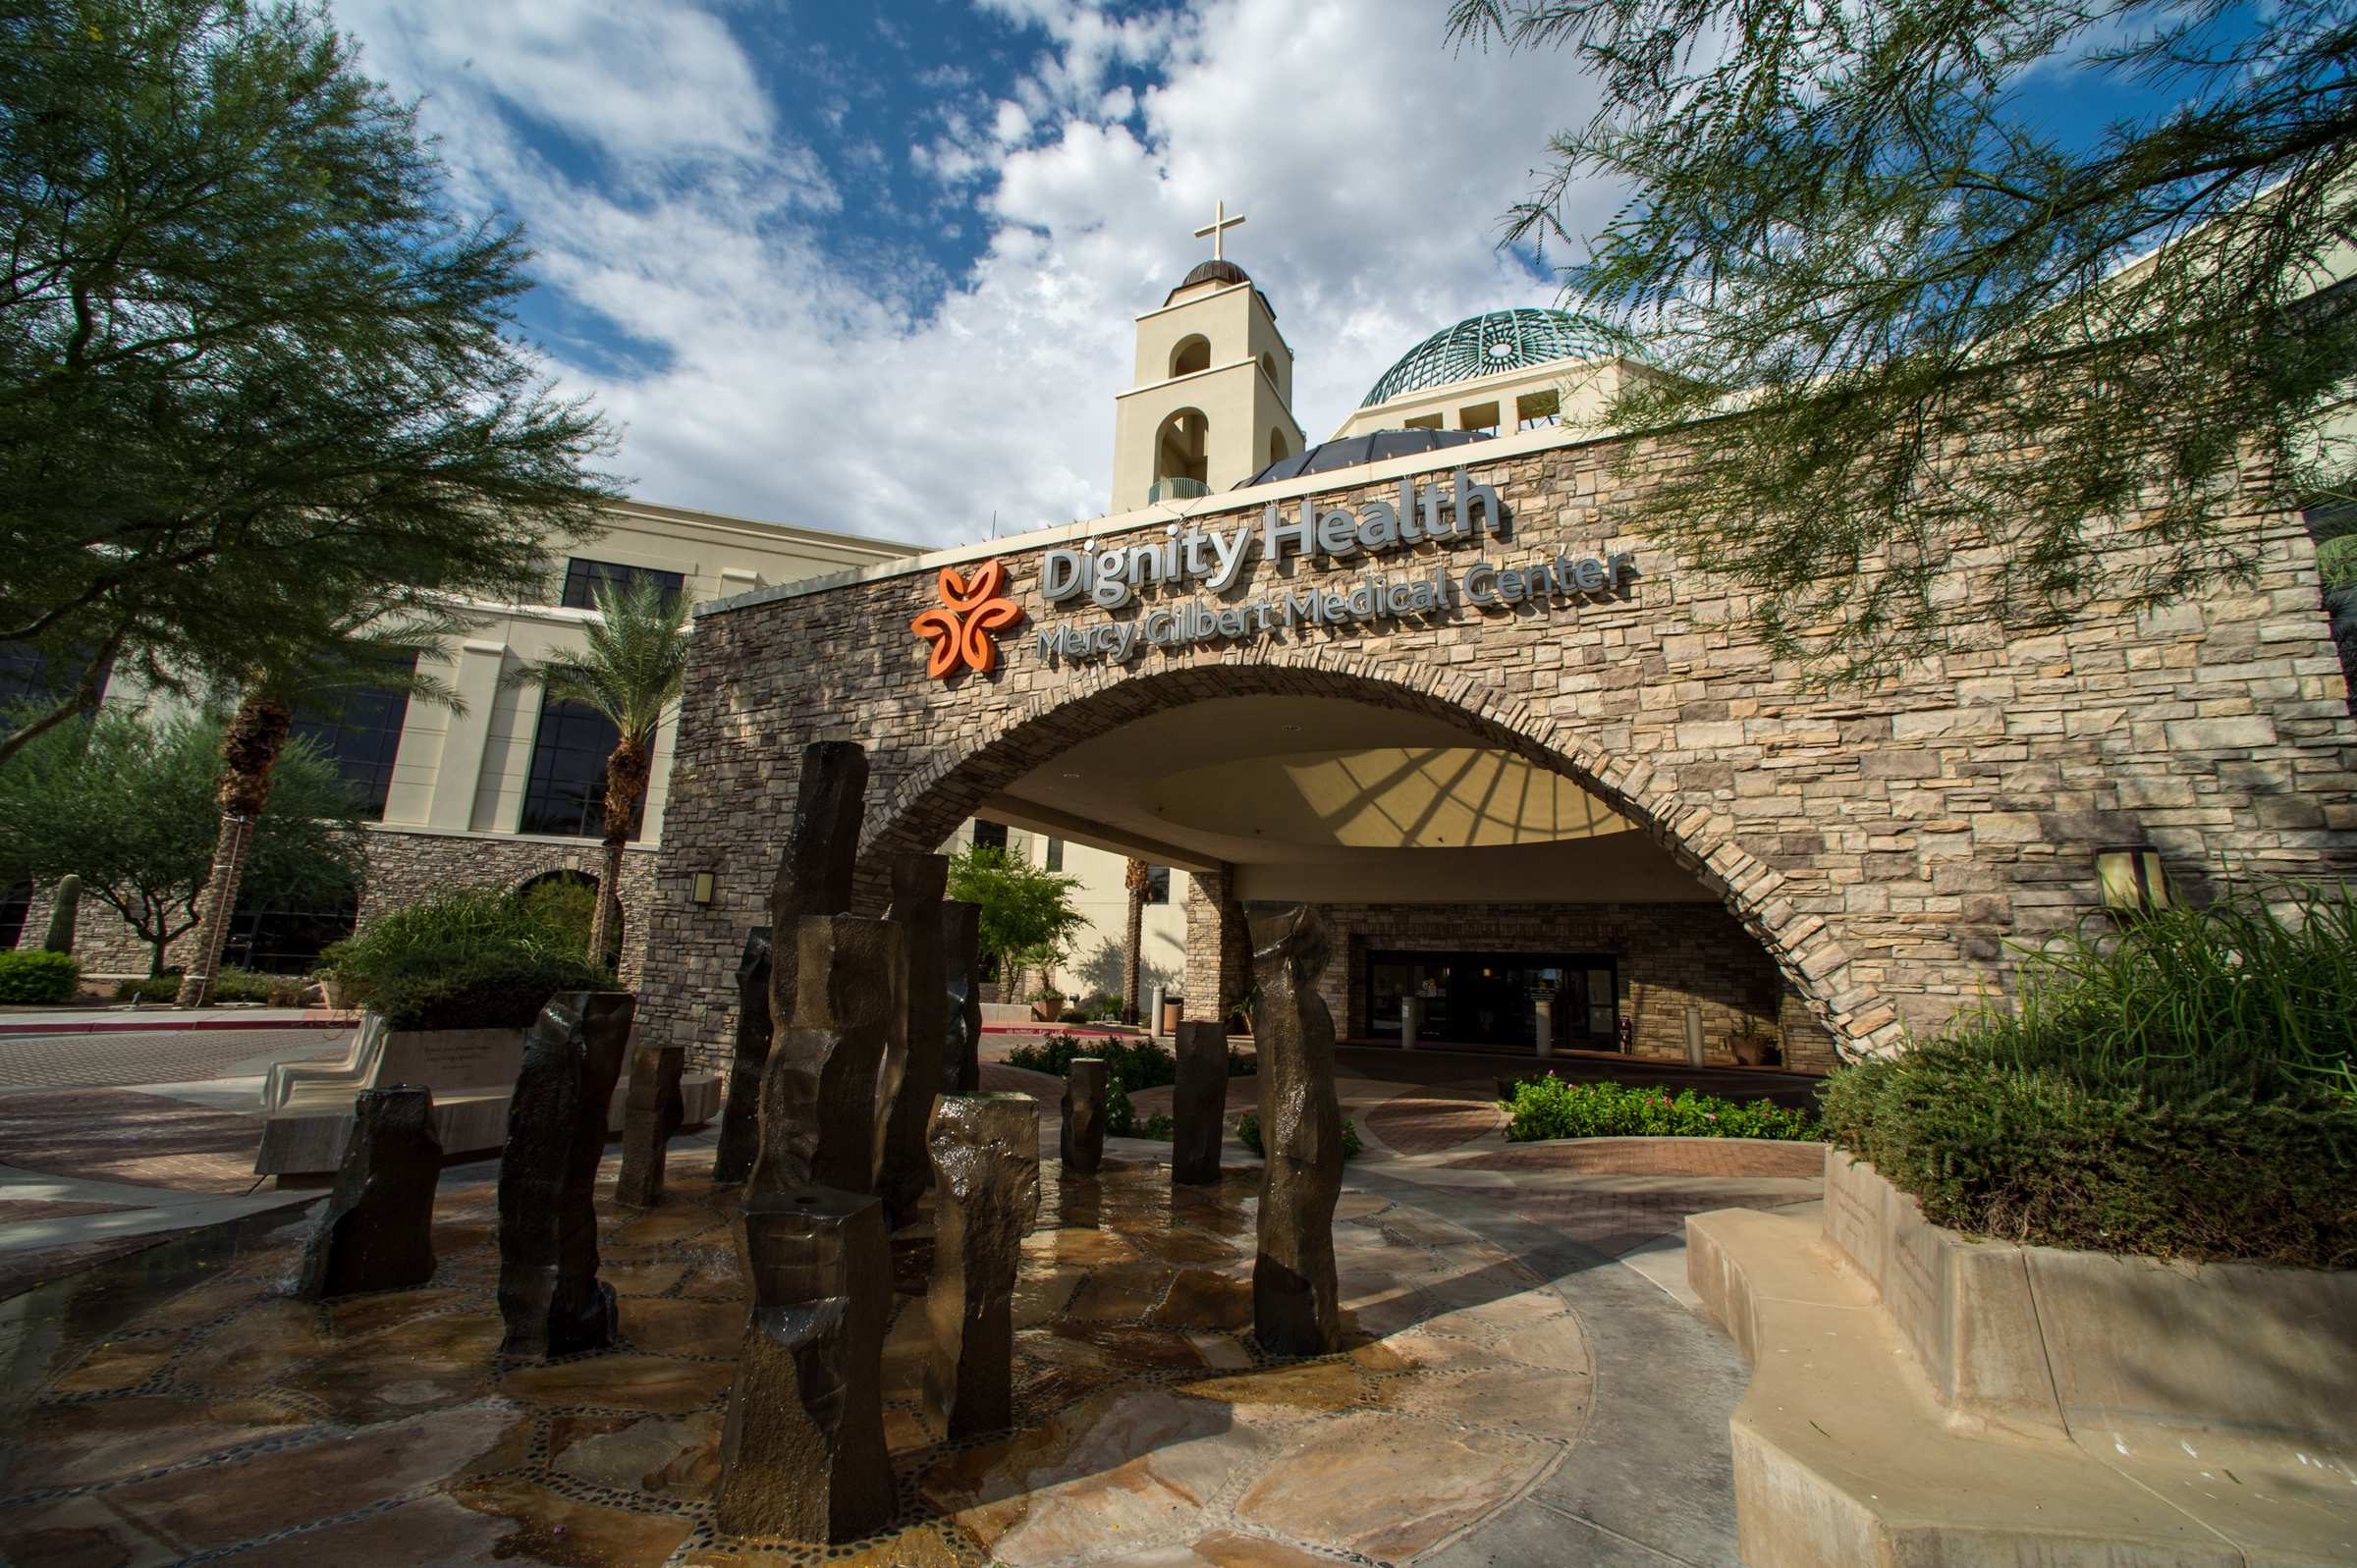 Mercy Gilbert Medical Center, In The Tradition Of Its Parent Company, Dignity Health, Is A Full-service, Acute Care Hospital Where East Valley Residents Of All Ages And Backgrounds Experience A Unique Healing Environment And Are Treated With Dignity And Respect. Photo By Mark Skalny Photograph.